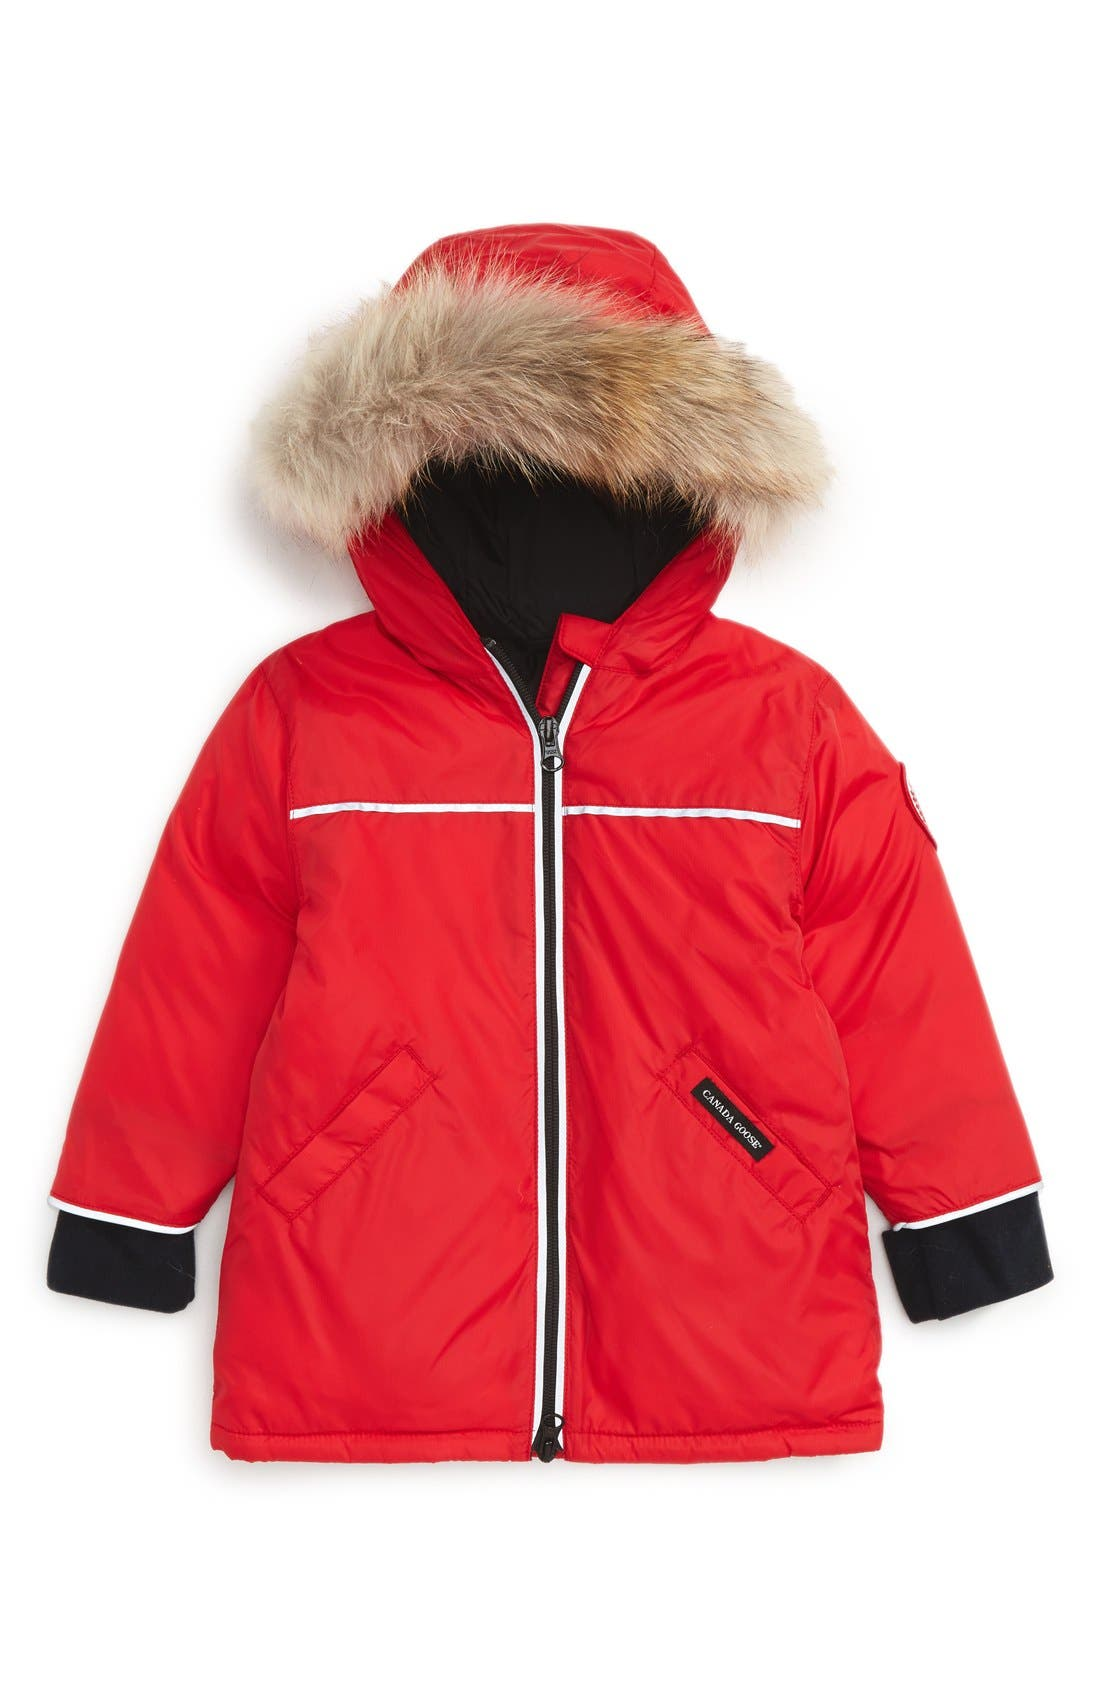 Canada Goose 'Reese' Down Jacket with Genuine Coyote Fur Trim (Baby)